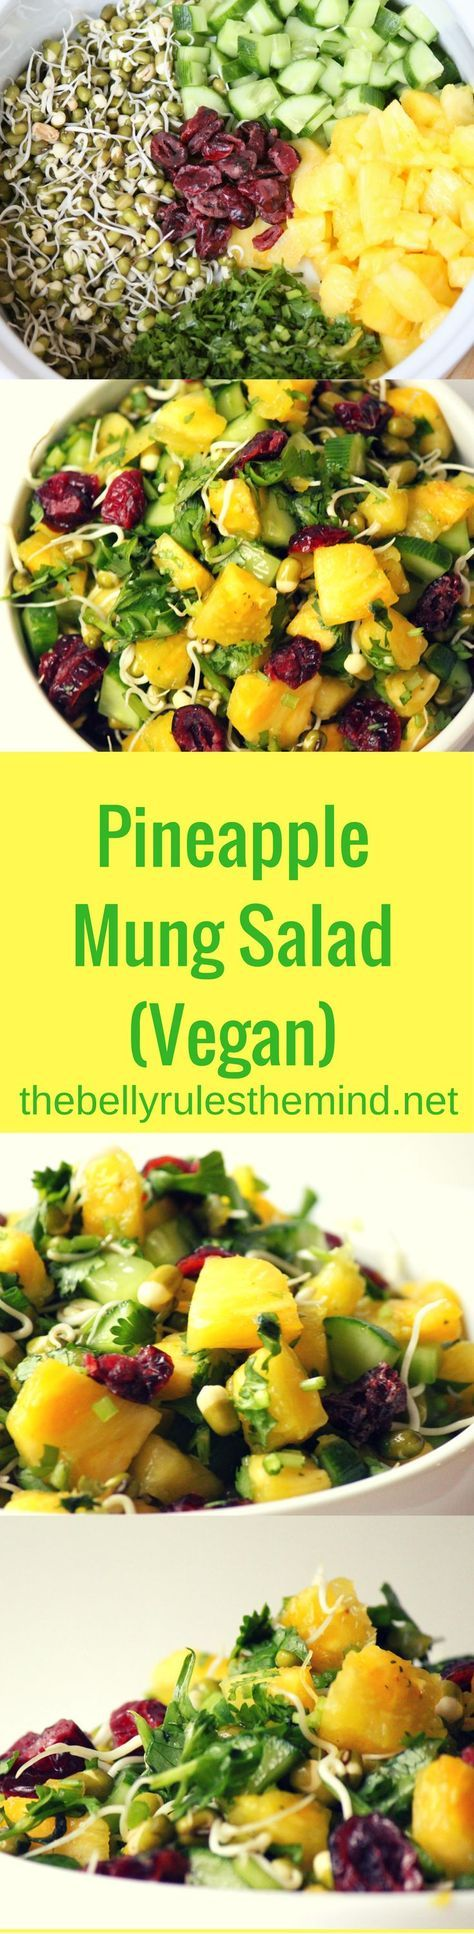 Pineapple Mung Salad is a perfect blend of flavors and texture. Sweet and tangy Pineapple along with the crunchy sprouted mung beans and the dressing as an element of zing  www.thebellyrulesthemind.net